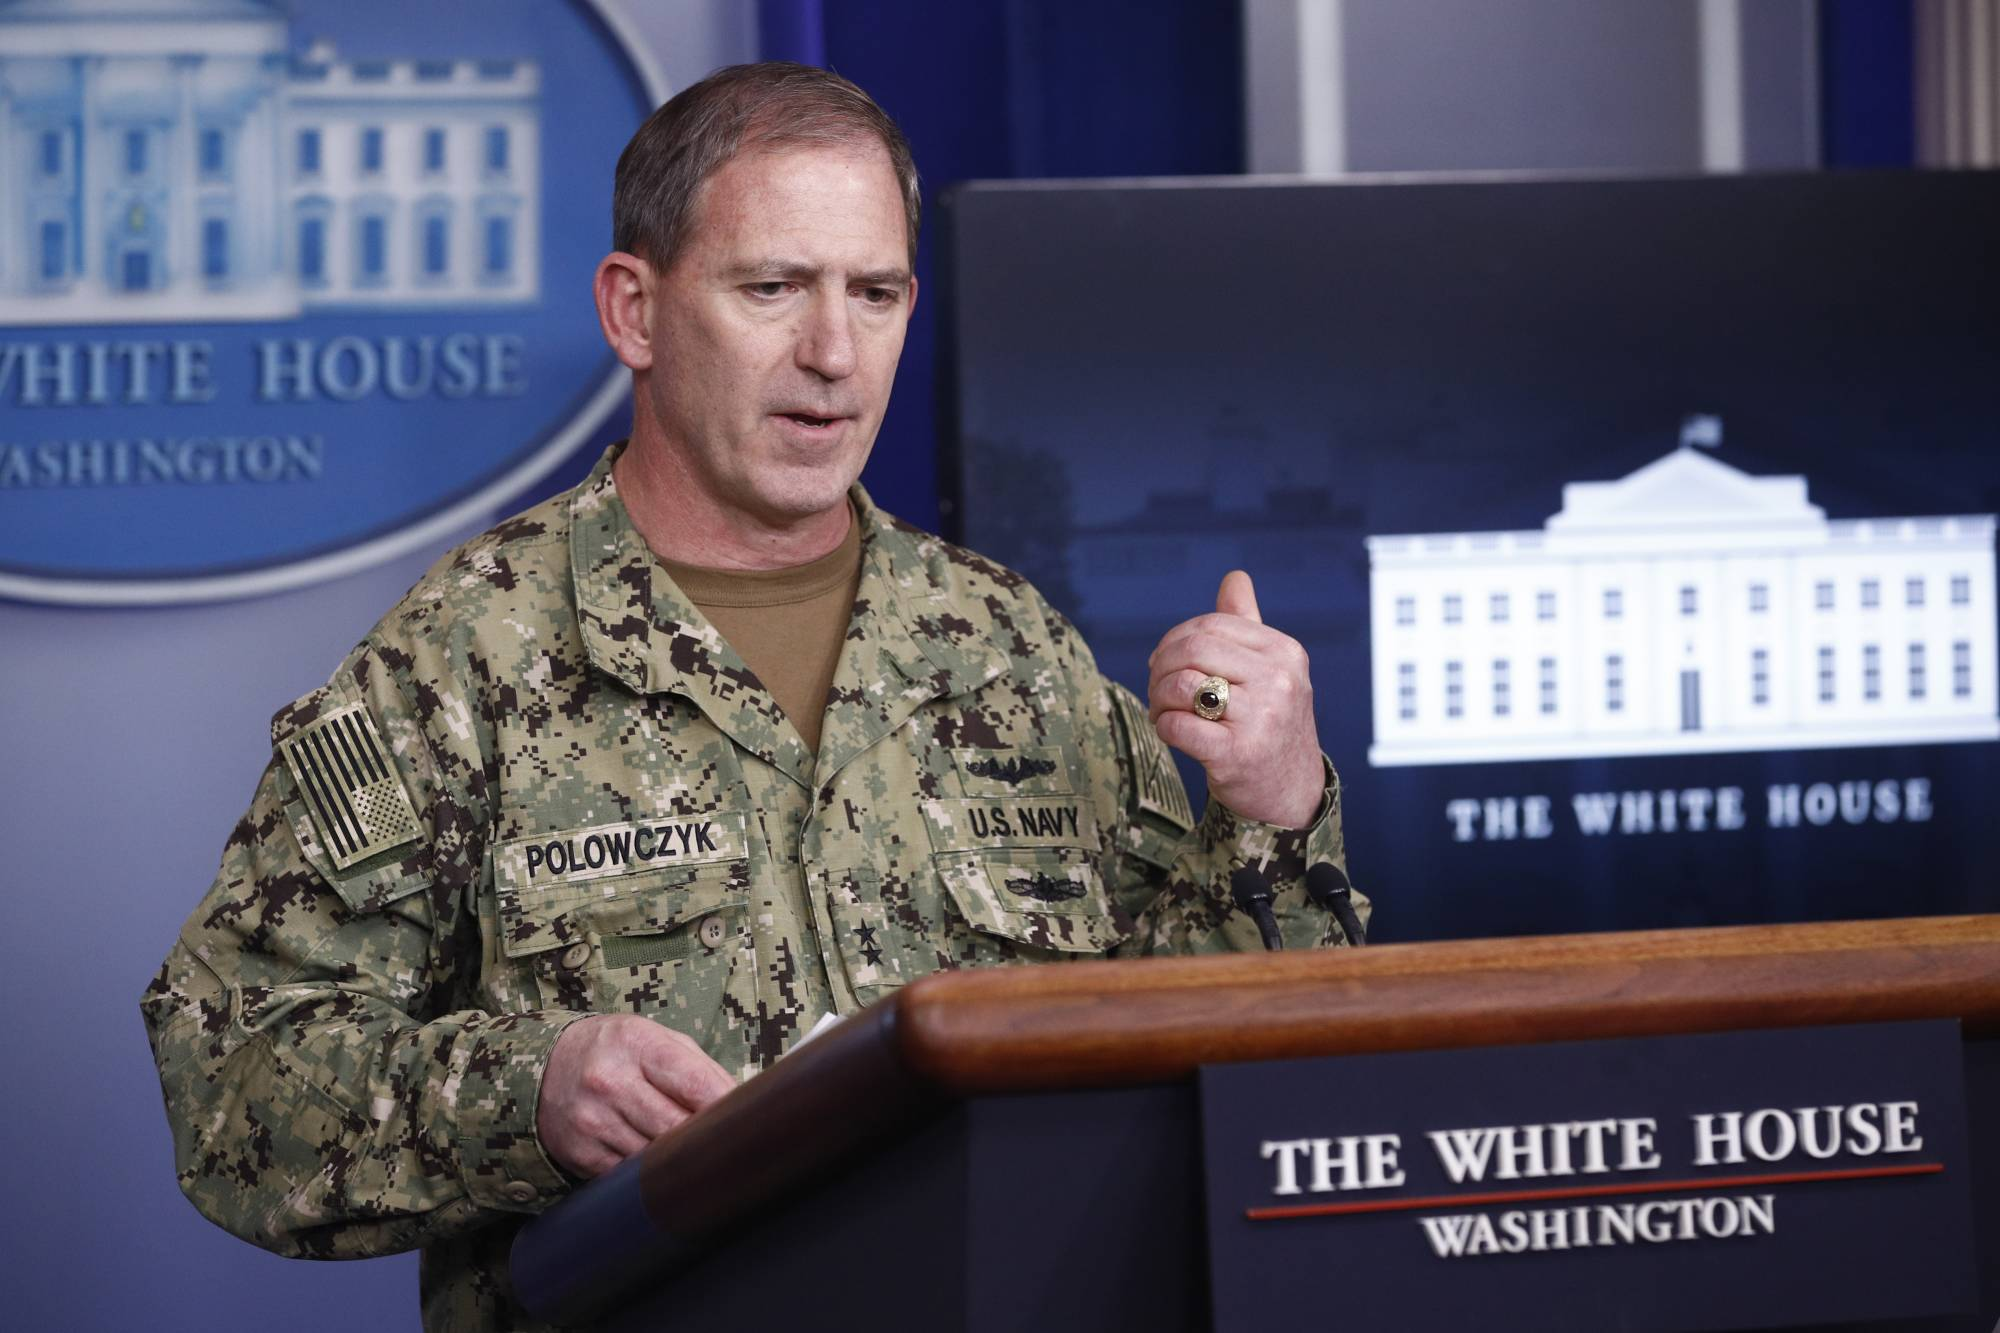 FILE - In this April 5, 2020, file photo, Navy Rear Adm. John Polowczyk, supply chain task force lead at the Federal Emergency Management Agency, speaks during a coronavirus task force briefing at the White House in Washington. U.S. officials are invoking a rarely used provision of American law that would shield companies from antitrust regulations to help the country from again running out of medical supplies in a pandemic. Polowczyk, who was appointed to run a White House supply chain task force in response to the outbreak, told reporters last week that the government is expanding the emergency stockpile of critical supplies and medicines managed by the Department of Health and Human Services. (AP Photo/Patrick Semansky, File)